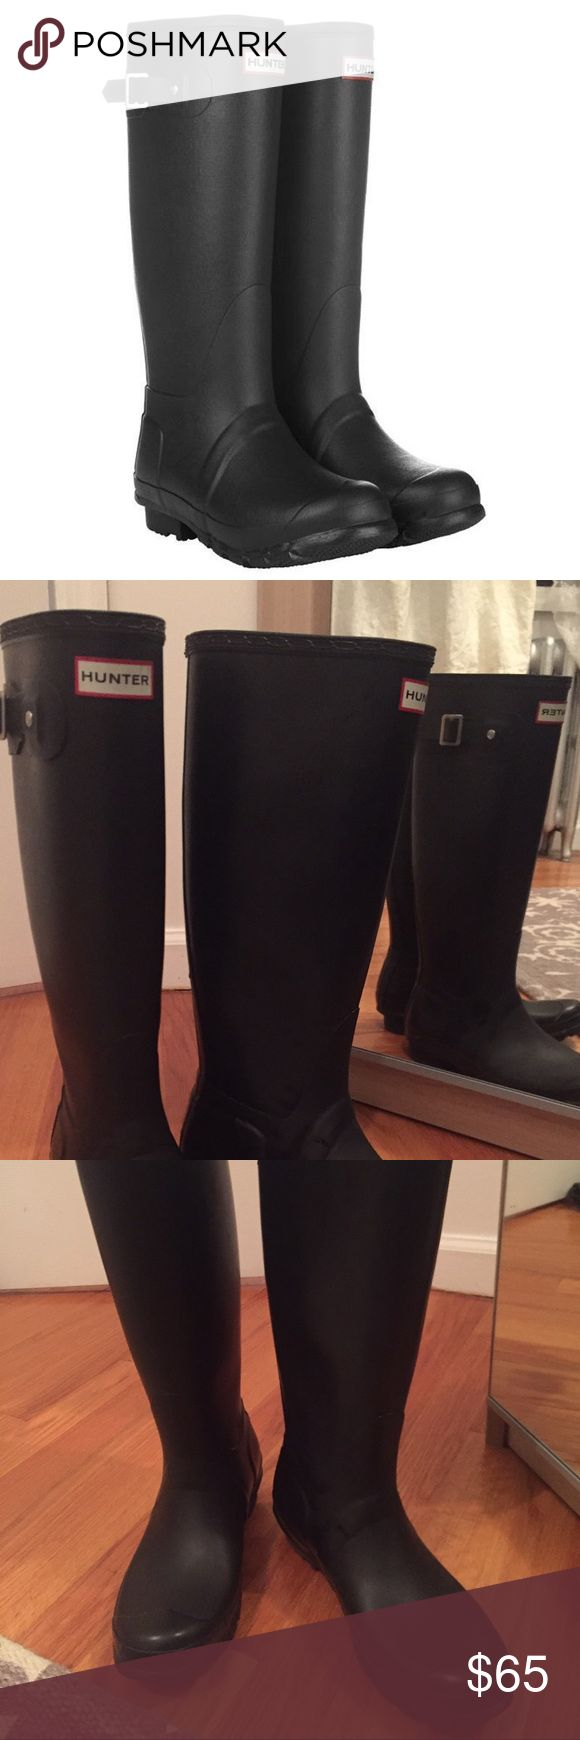 """Hunter Wellington Black Tall Rain Boots, size 6 Fantastic condition! They have been worn 5-10 times, and show minimal signs of wear. The outer rubber shows no defects. The inner fabric lining has small patches of dye transfer from jeans running against (pictured). They are size 6, but run large. I am able to wear 2 pairs of socks comfortably in cold weather. 16"""" high, 15"""" circum.  **NOTE: If purchased by end of business day 10/12, I will ship immediately. If purchased after end of day 10/12…"""